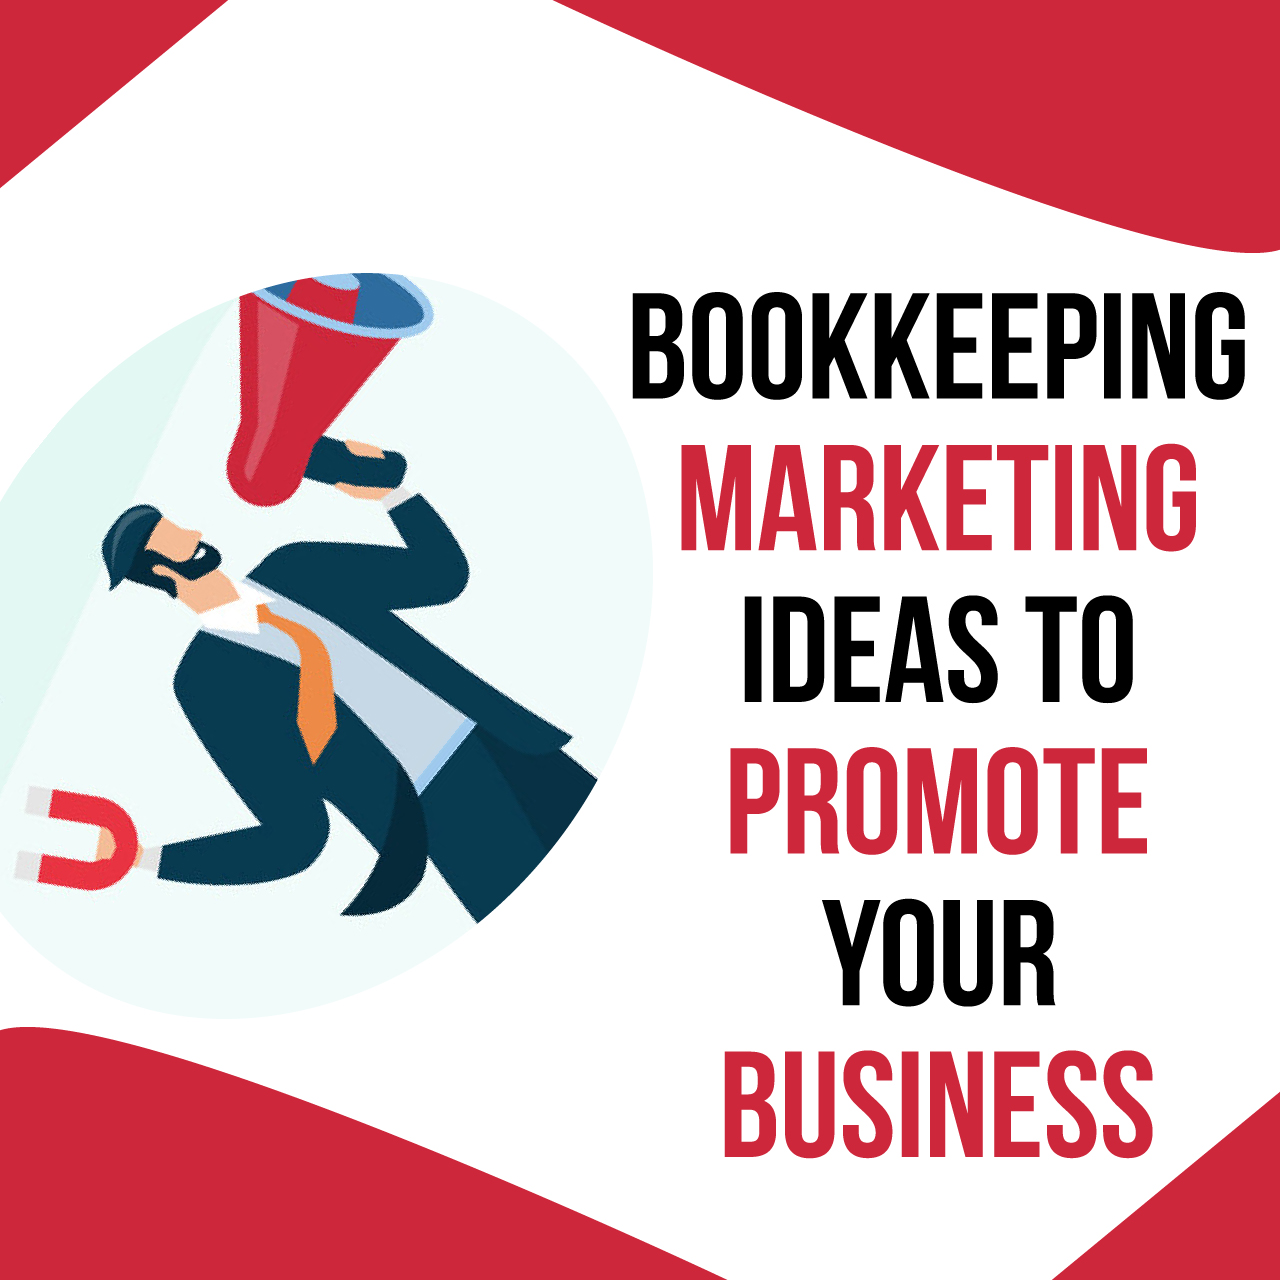 Bookkeeping Marketing Ideas